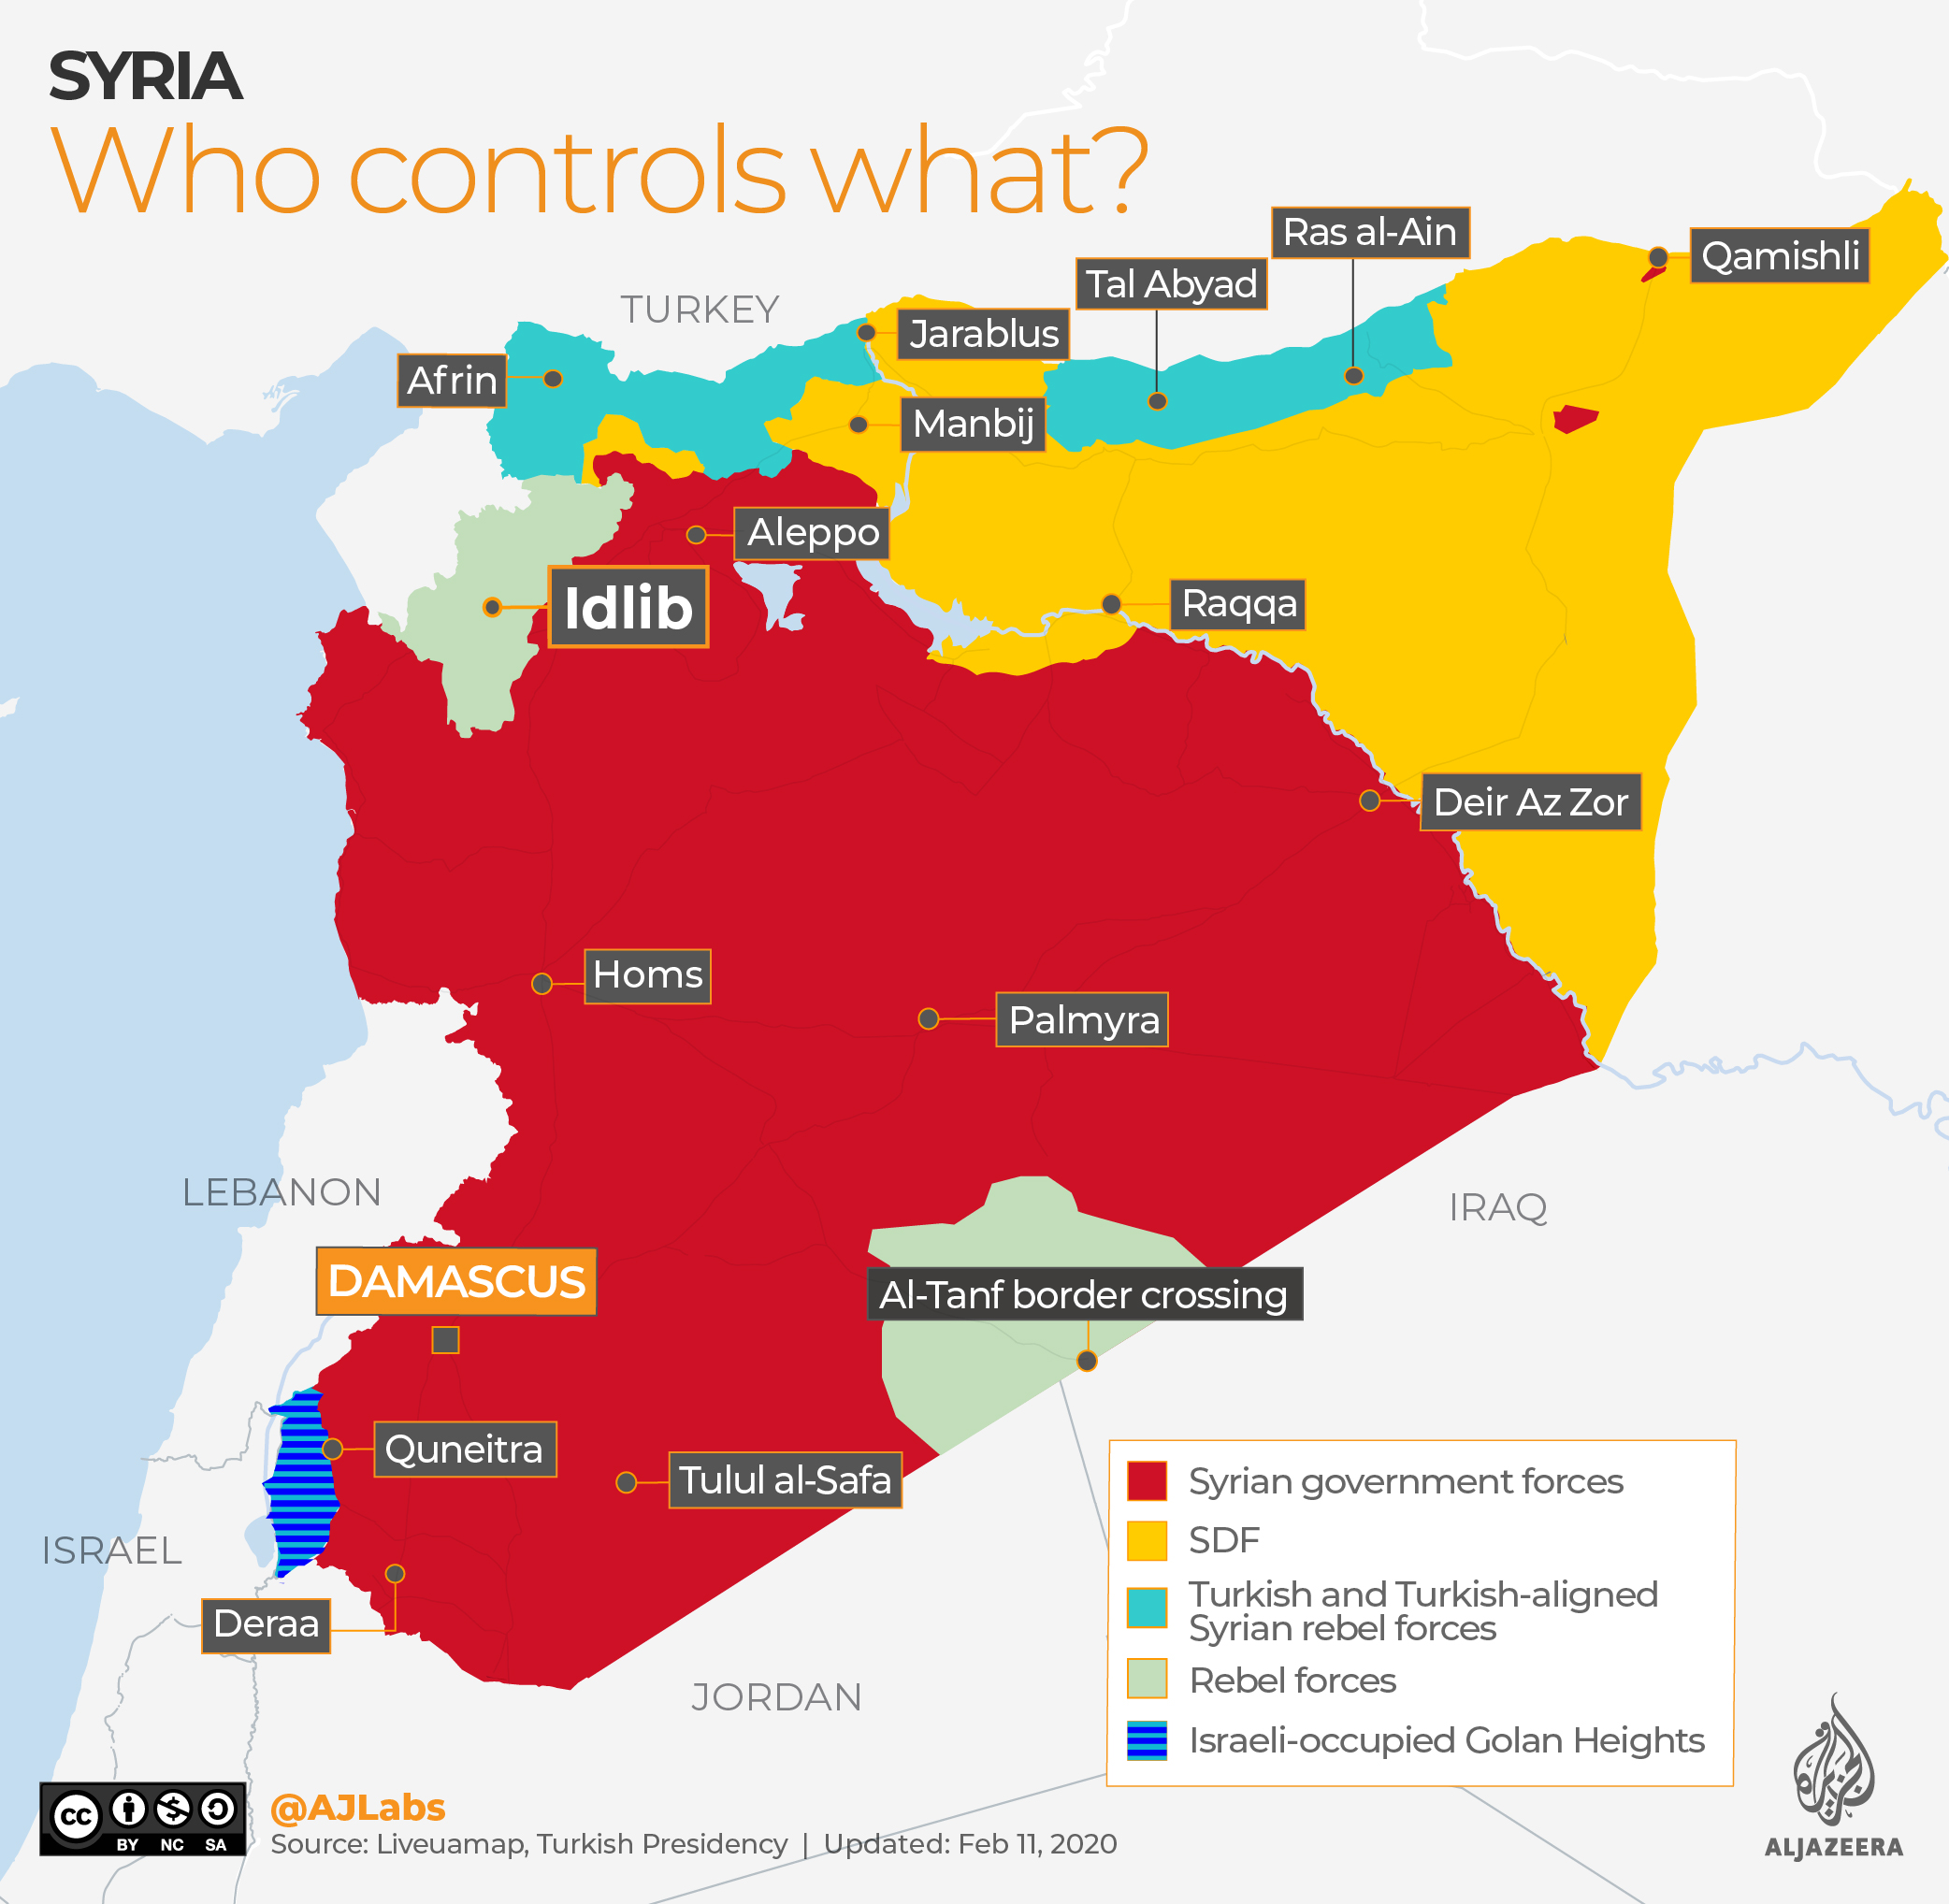 INTERACTIVE: Syria Who controls what map - FEB 11 2020